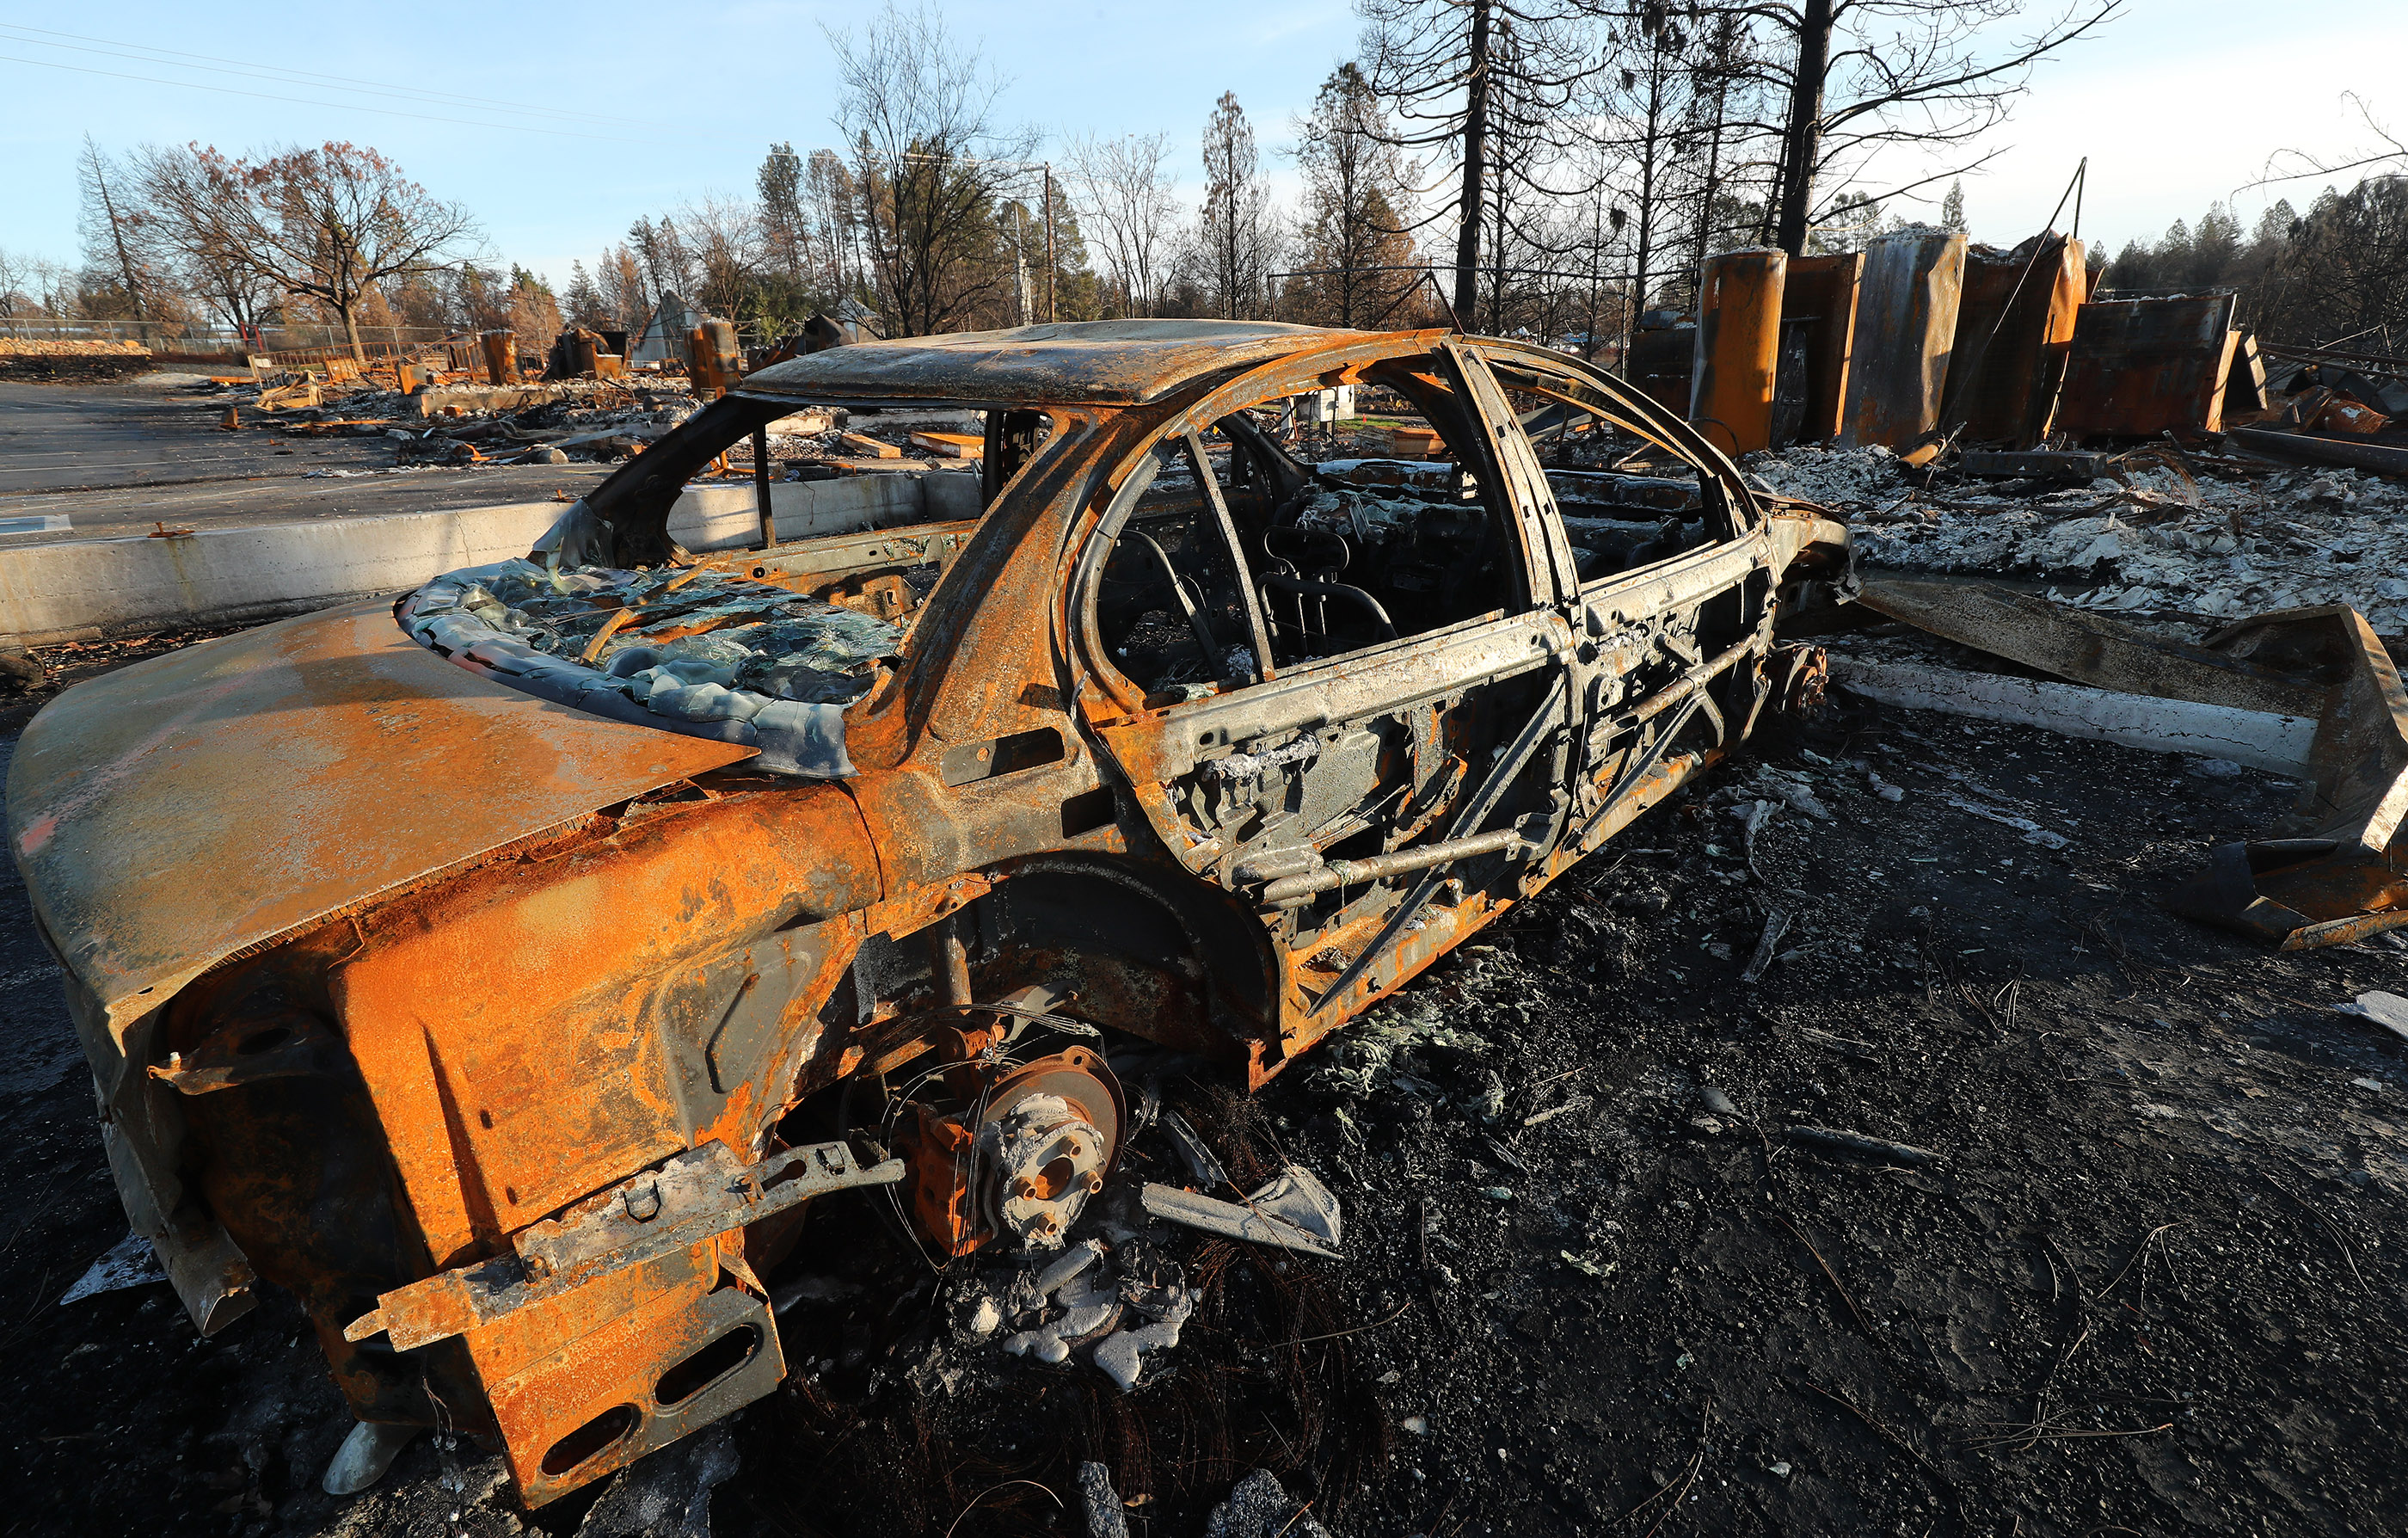 A car was destroyed in Paradise, California, on Saturday, Jan. 12, 2019, two months after the Camp Fire destroyed more than 18,000 homes and businesses.